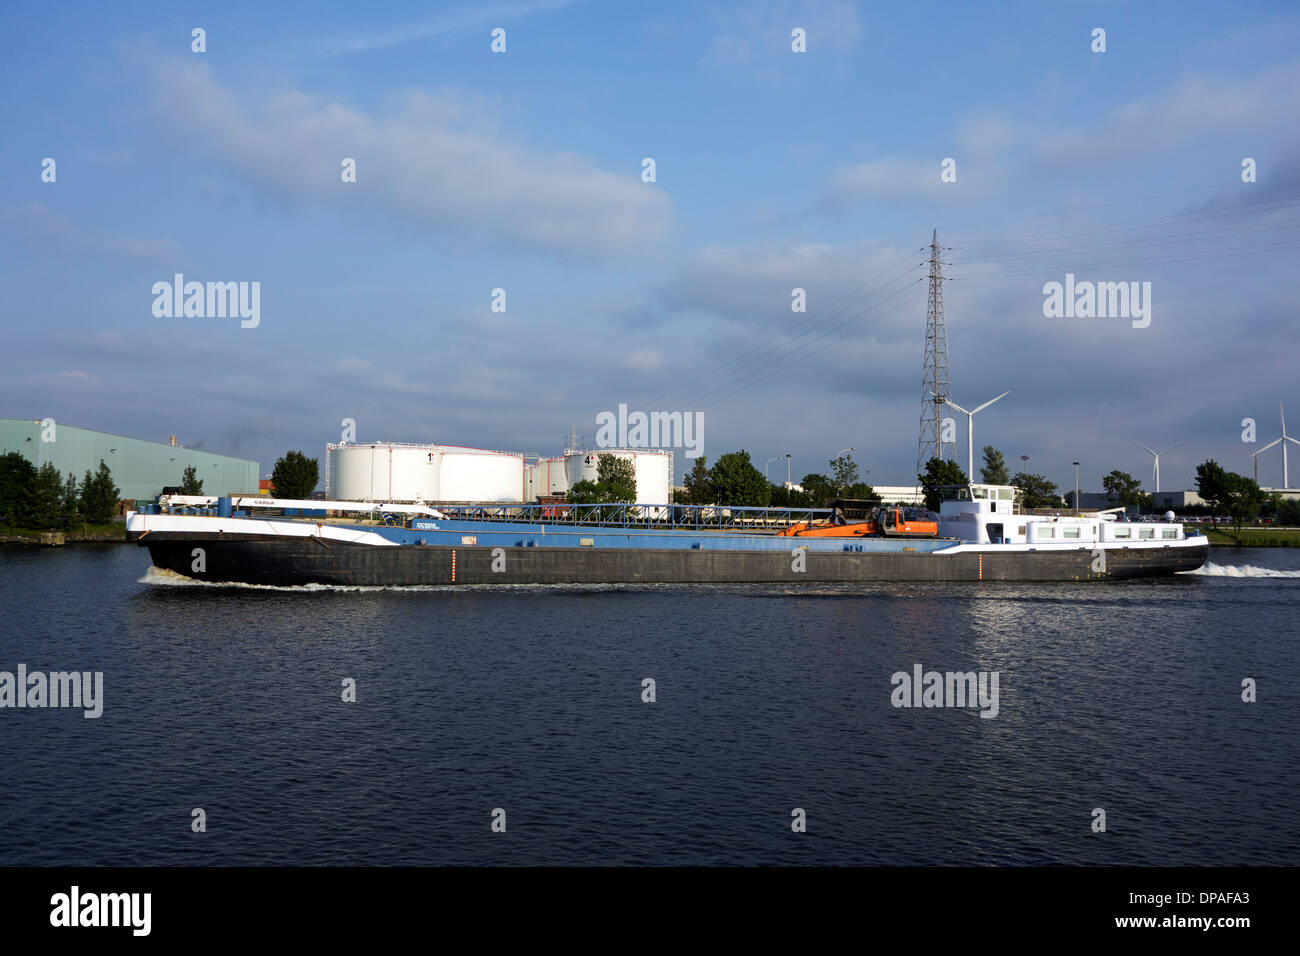 Cargo inland vessel sailing in the port of Ghent, East Flanders, Belgium - Stock Image